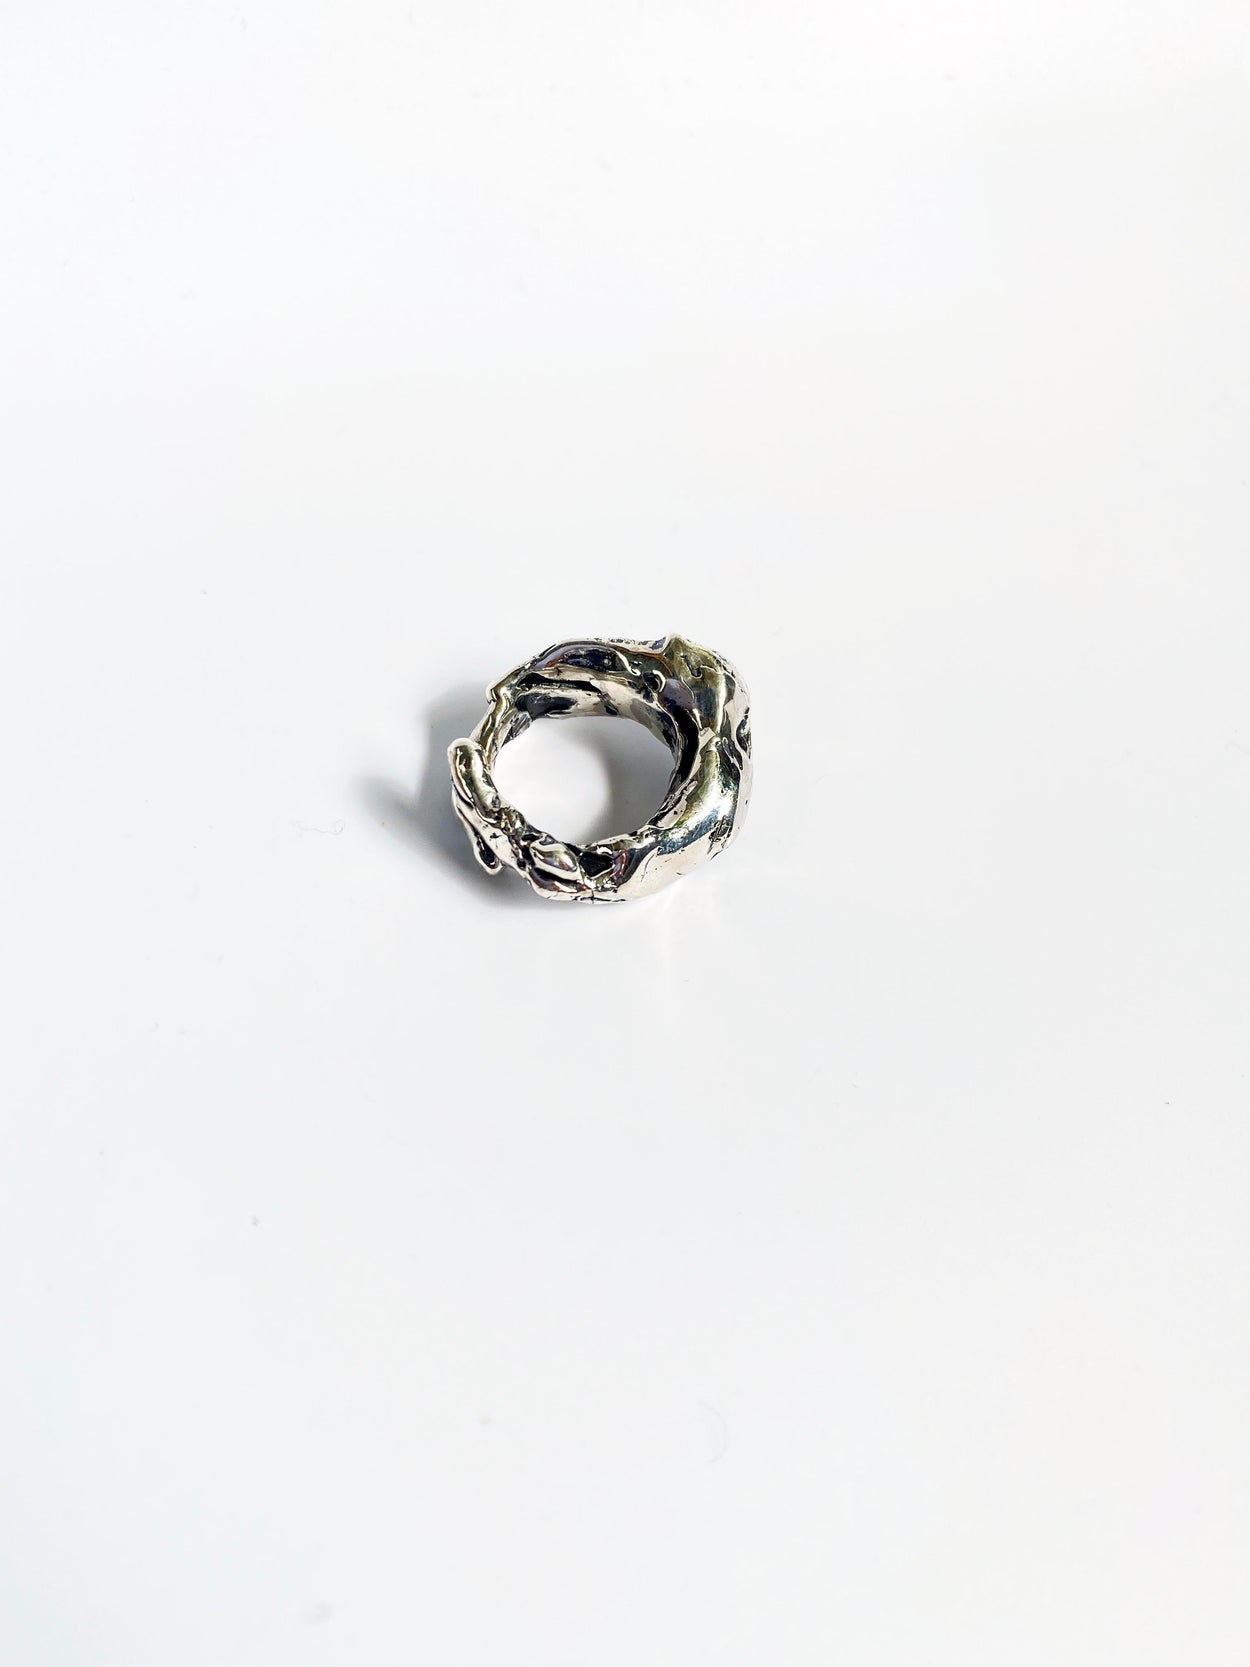 Studio Metallurgy silver ring